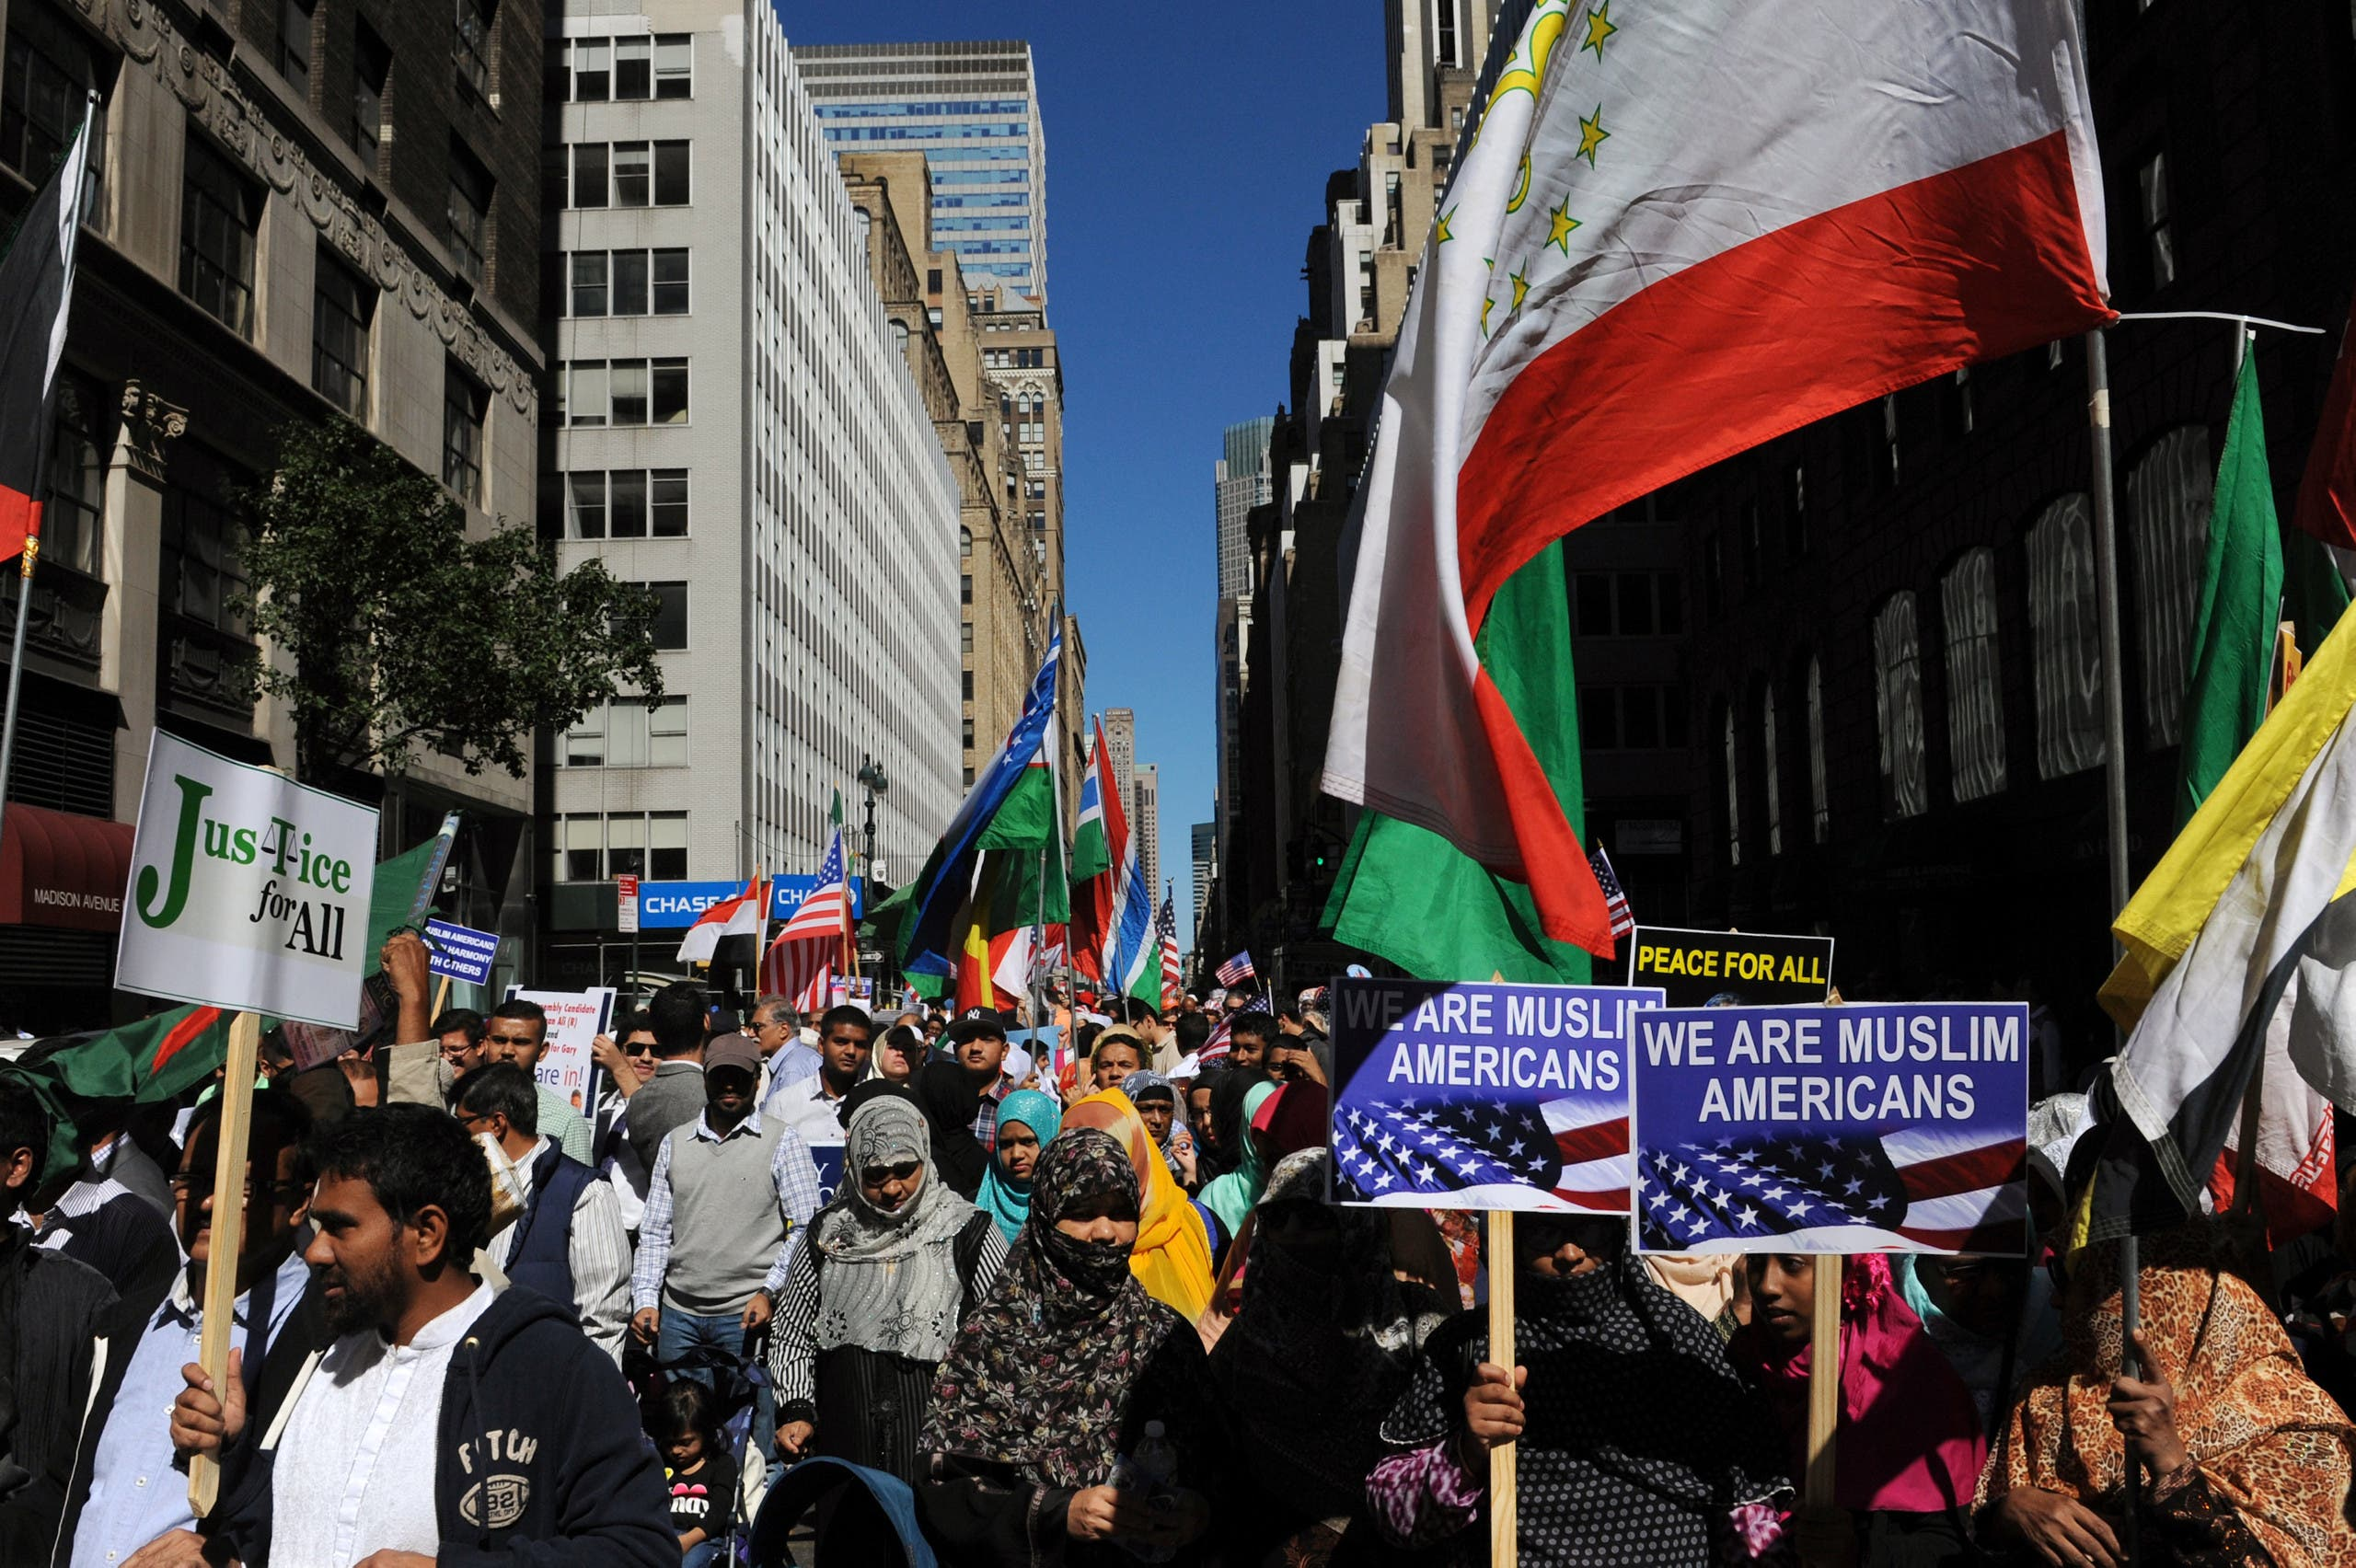 People participate in the annual Muslim Day Parade in the Manhattan borough of New York City, September 25, 2016. REUTERS/Stephanie Keith